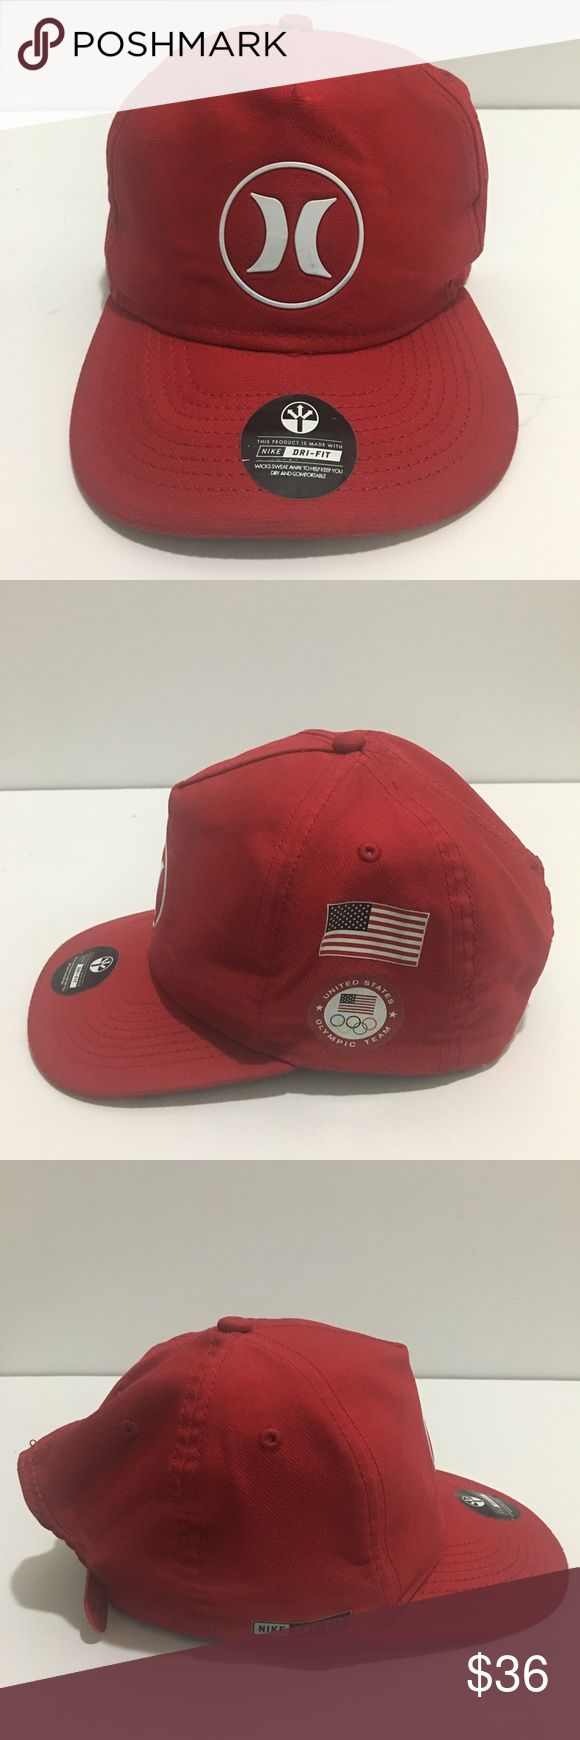 Hurley DriFit Team USA Snapback Red Rio Cap HURLEY Dri-Fit TEAM USA Snapback red hat Rio 2016 cap. New hat never been worn. Has some debris from storage very little. Great looking hat snap back closure.  Please message for any questions. Hurley Accessories Hats